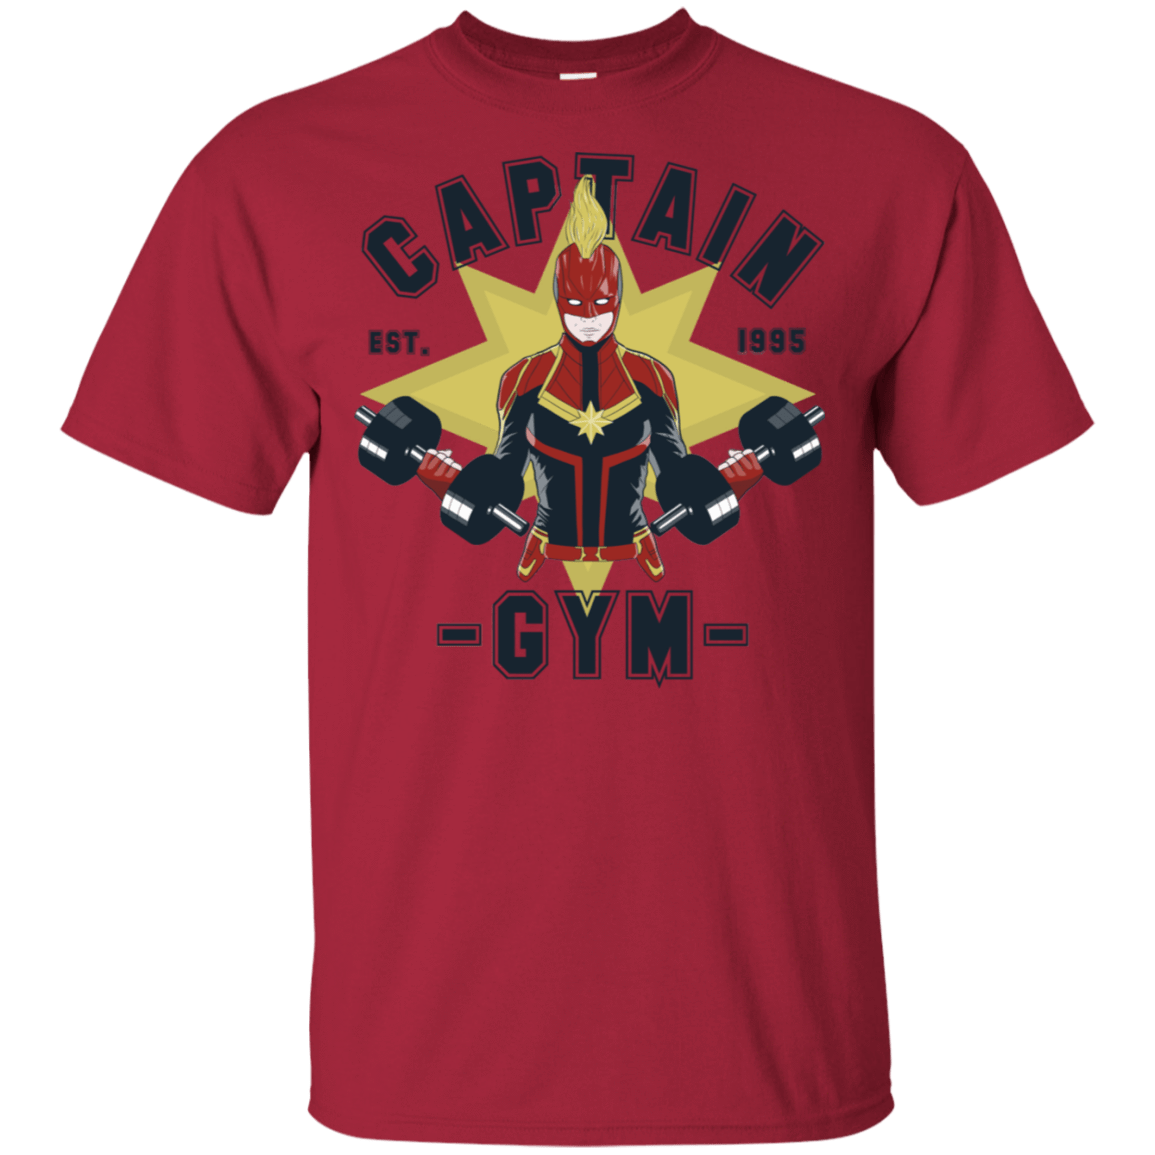 T-Shirts Cardinal / S Captain Gym T-Shirt